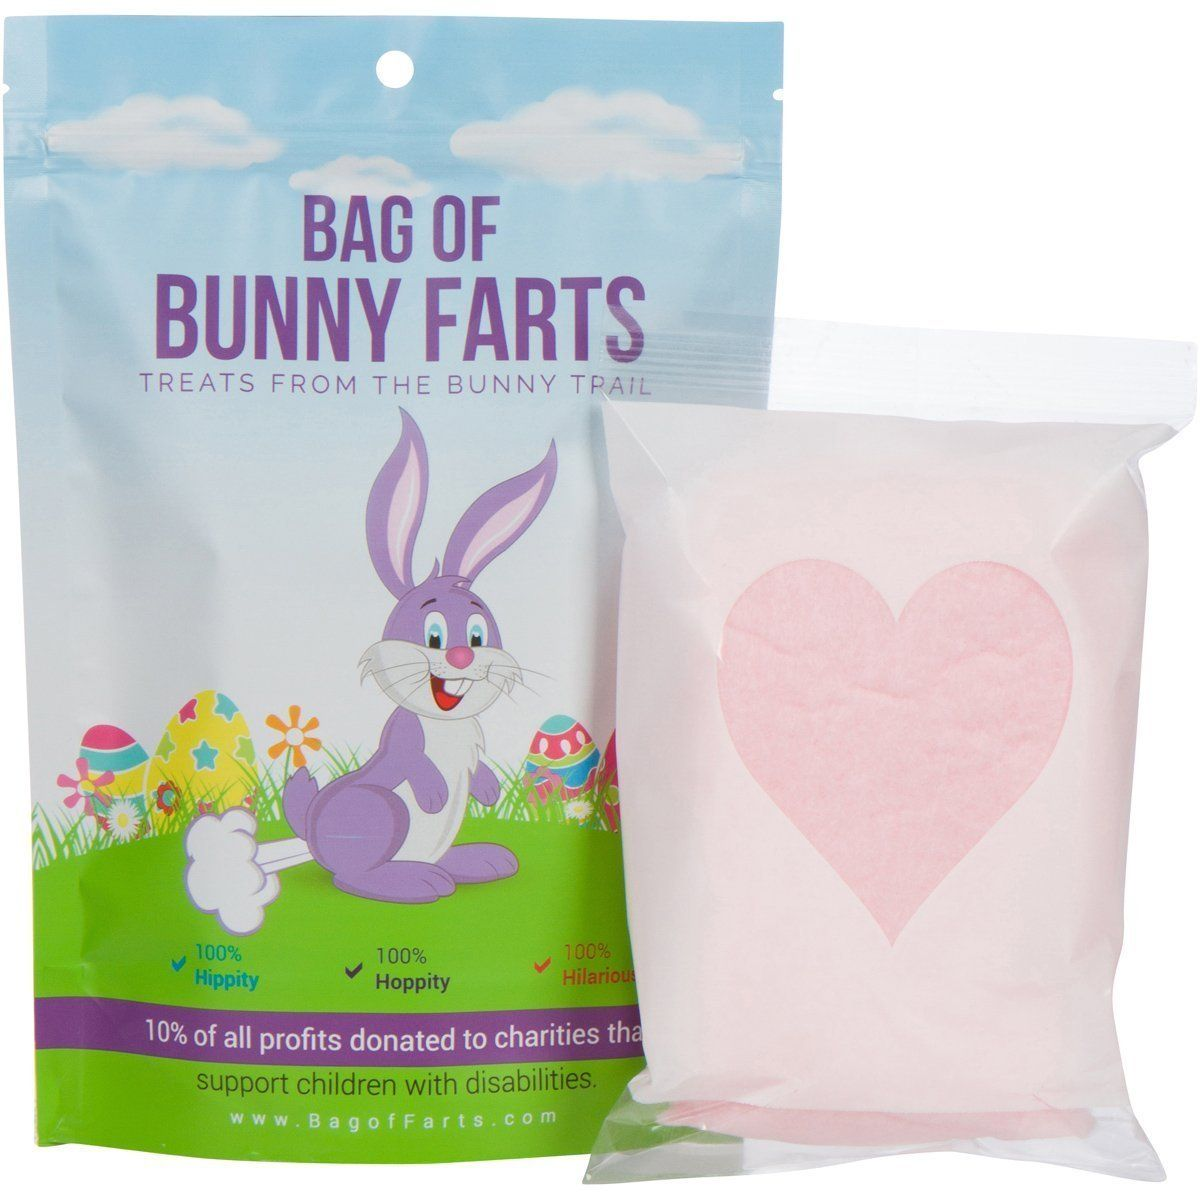 Bag of bunny farts cotton candy funny unique easter basket gift bag of bunny farts cotton candy funny unique easter basket gift for kids parents negle Image collections